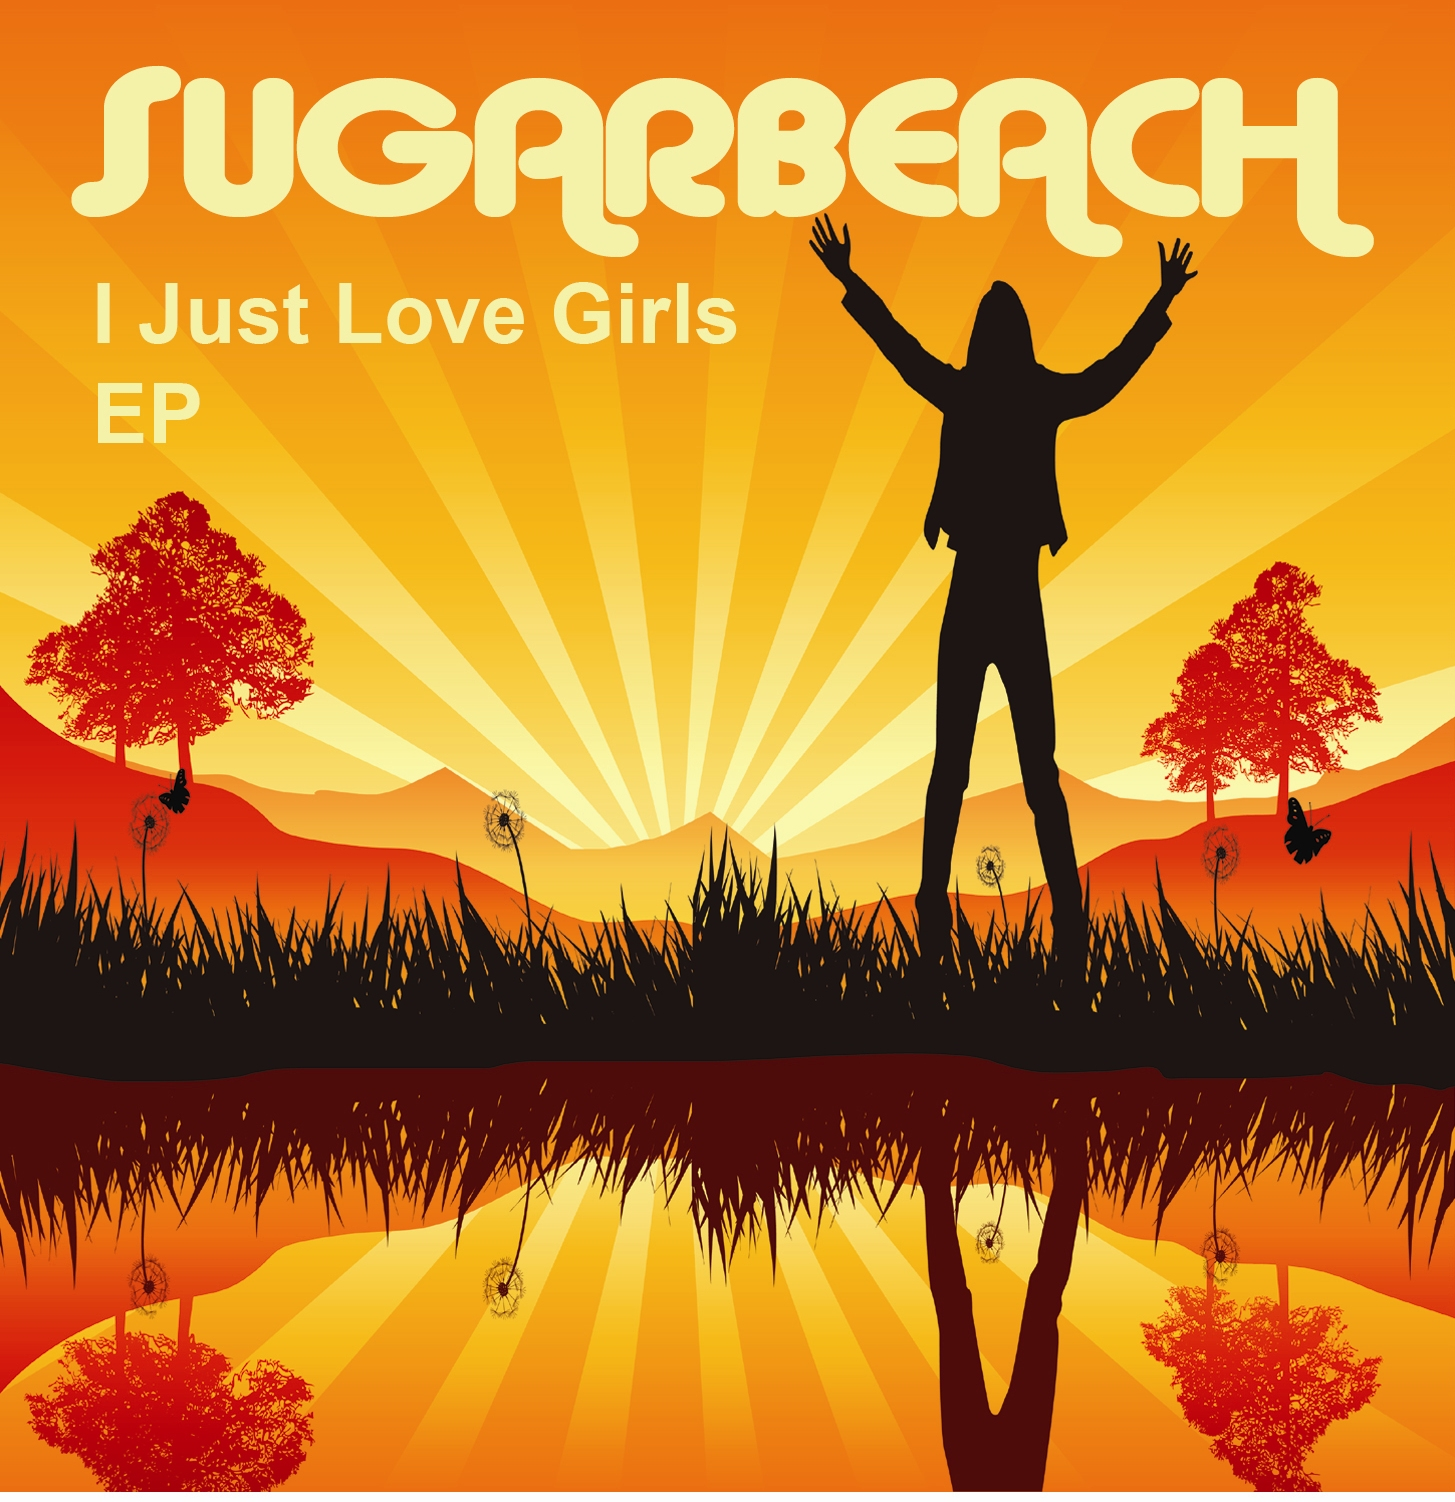 First Release from Sugarbeach Duo 4 song EP